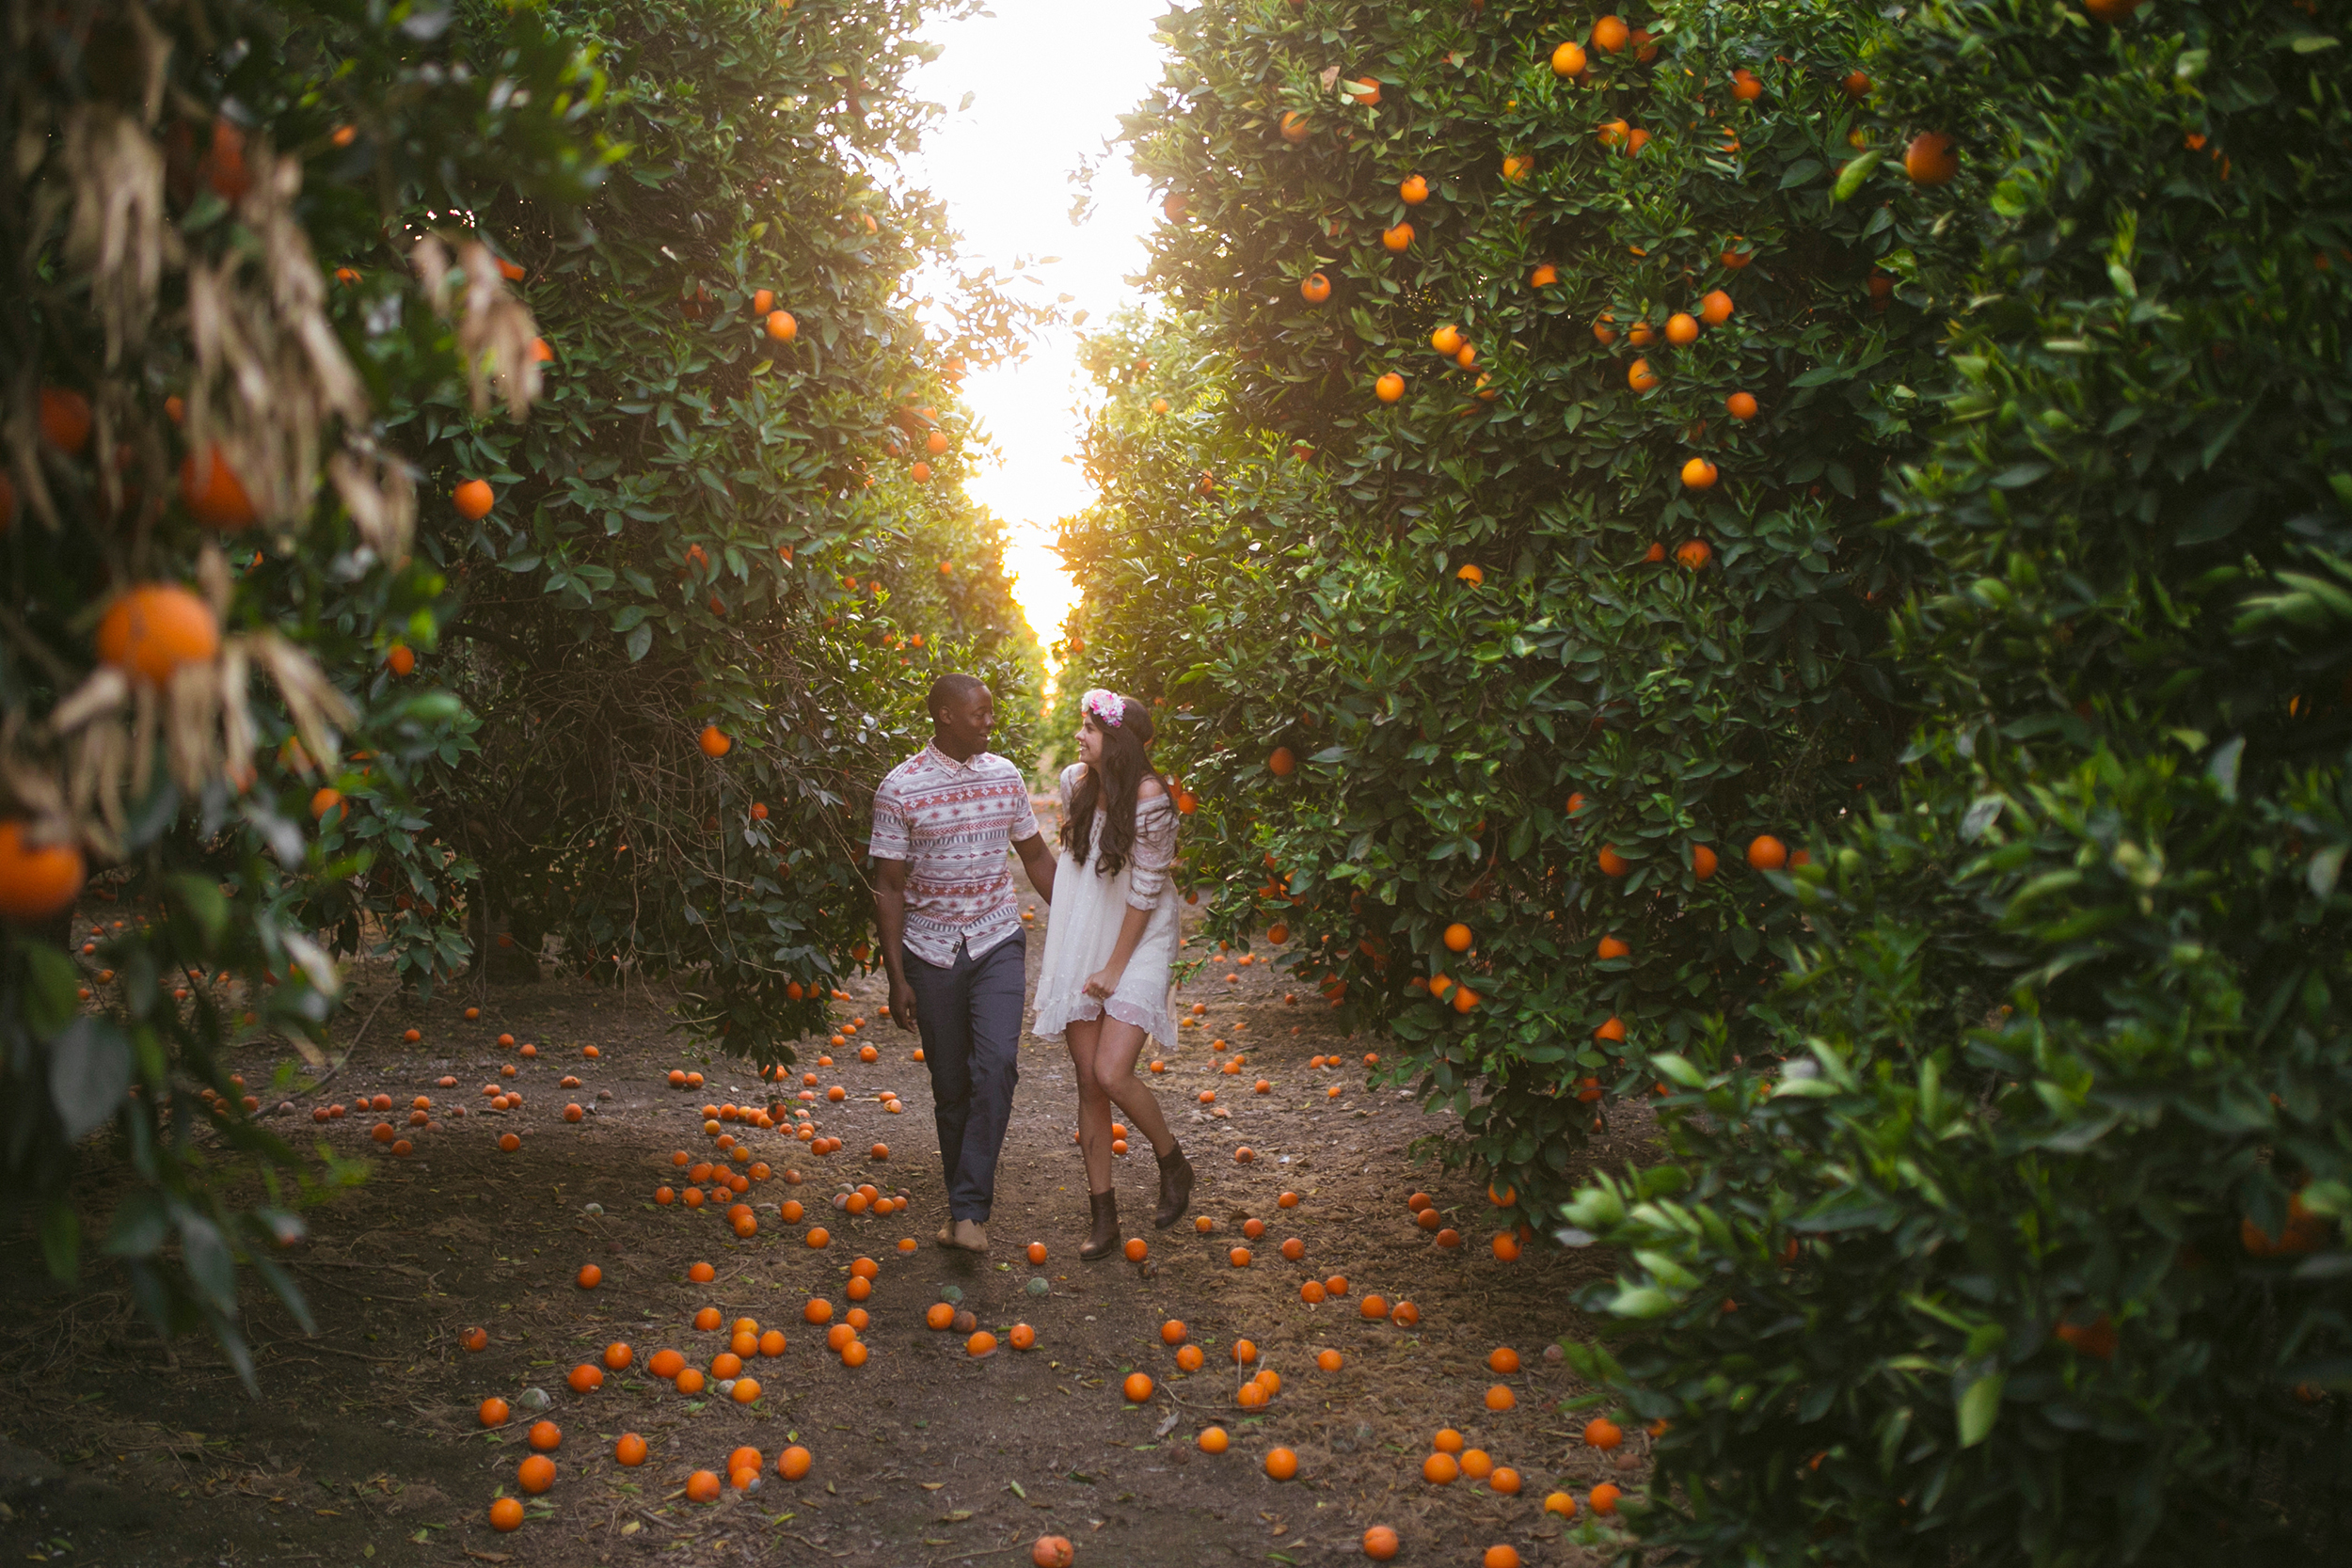 Colby-and-Jess-Adventure-Engagement-Photography-Orange-Grove-San-Bernardino-California298.jpg